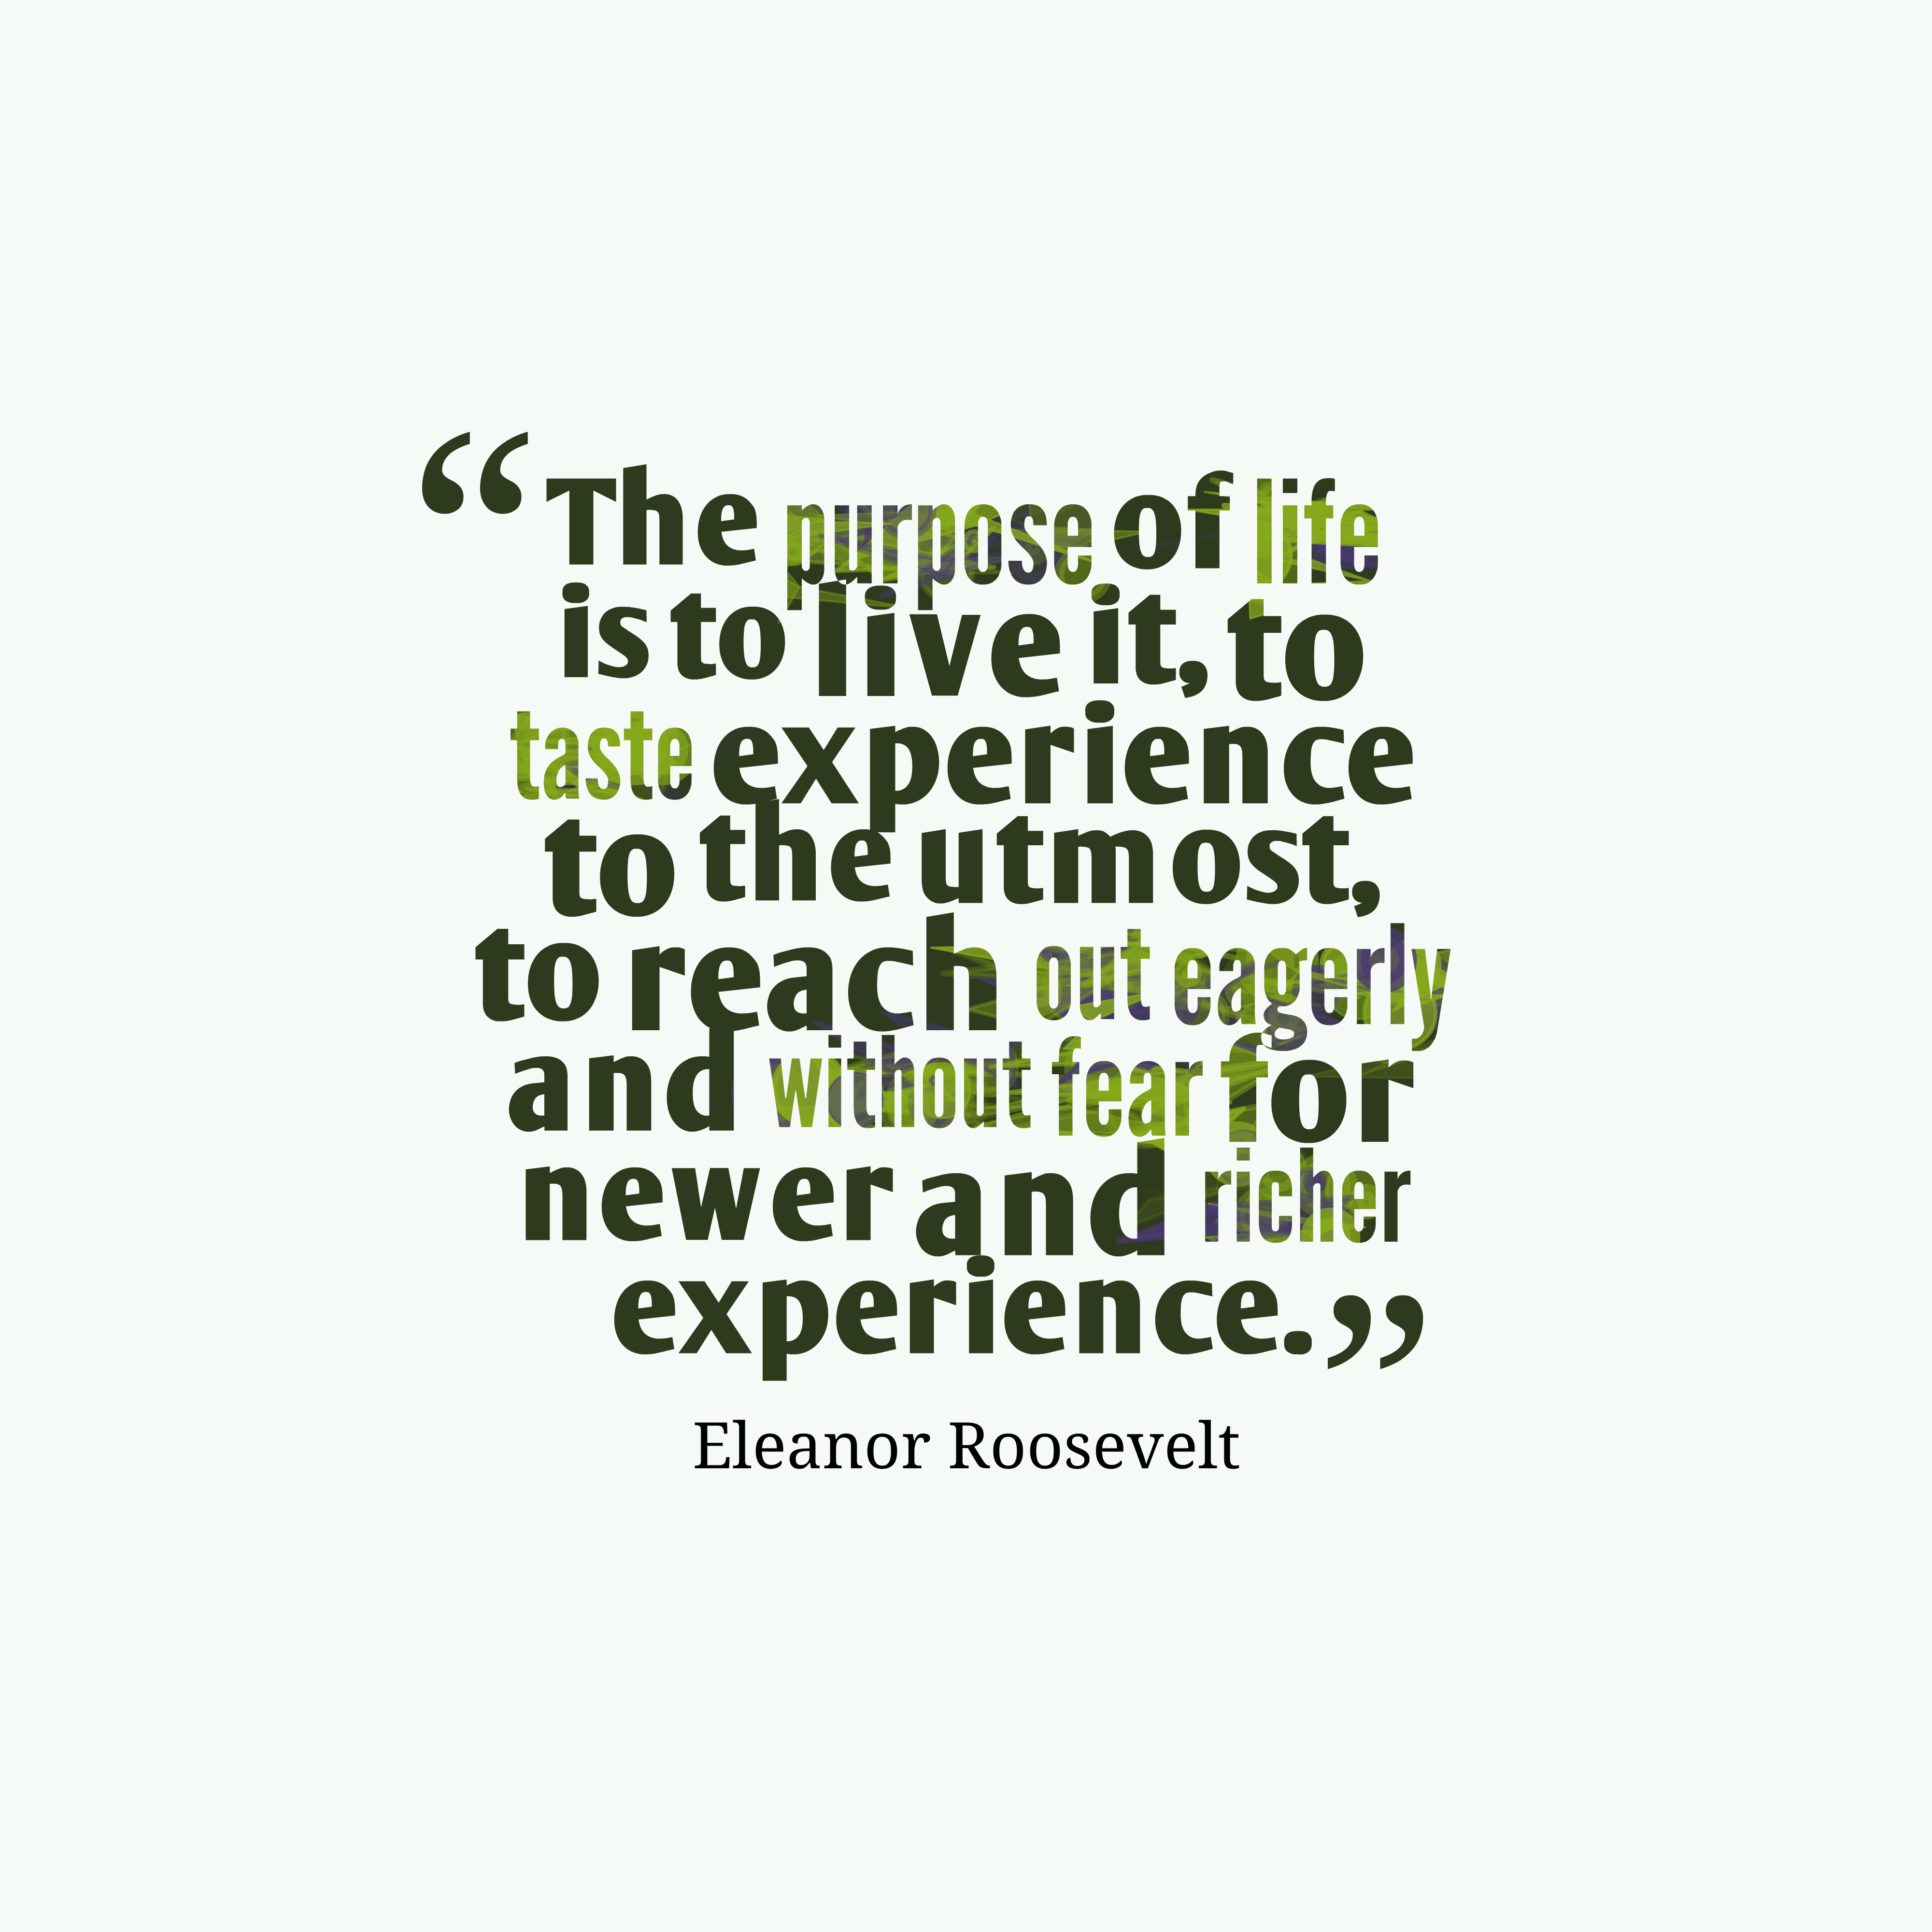 Eleanor Roosevelt Quote | Eleanor Roosevelt Quote About Life